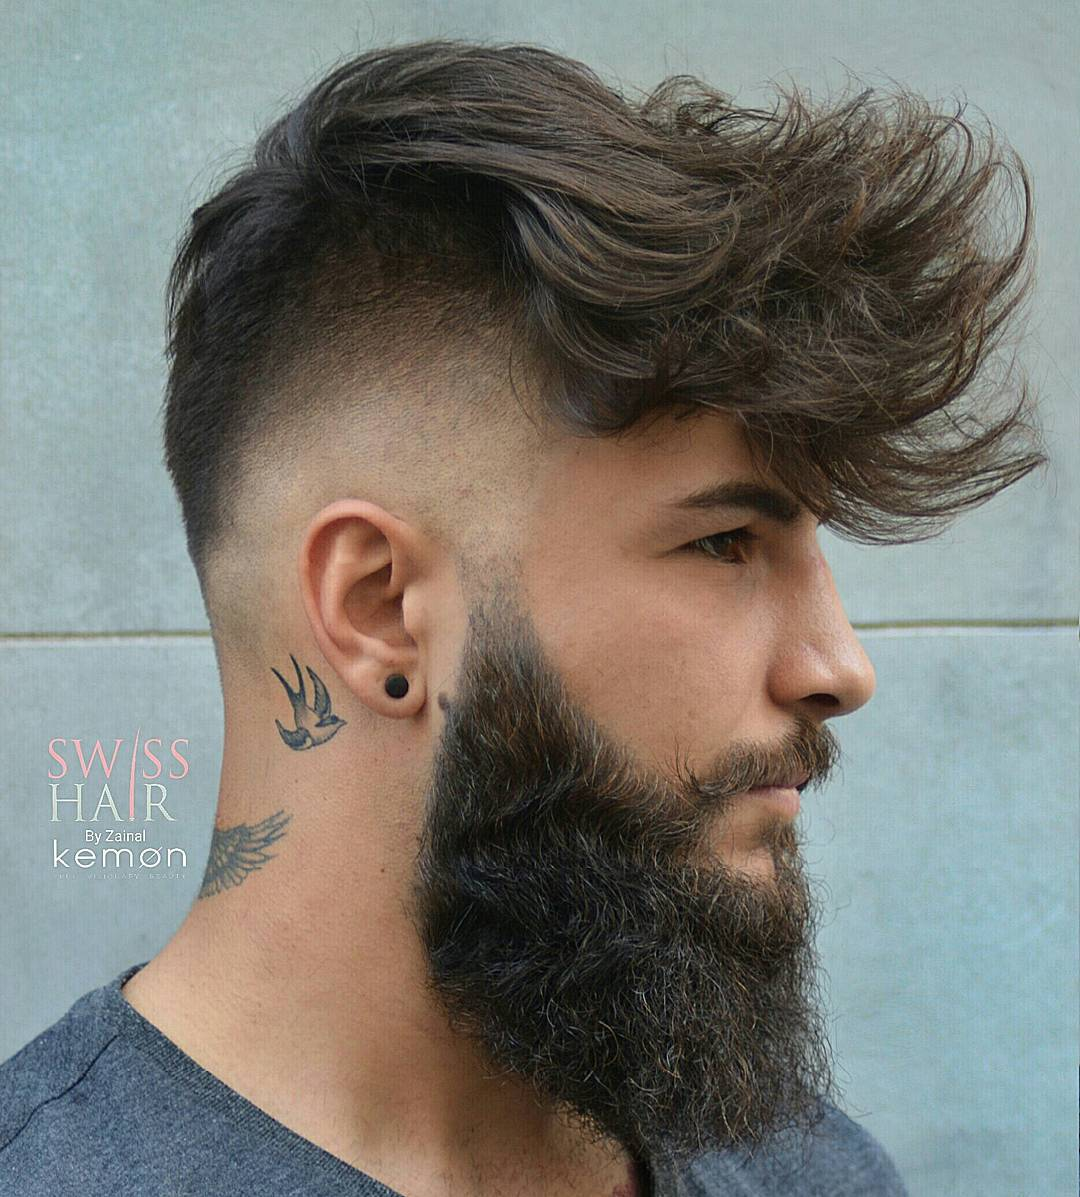 100+ new men's hairstyles (top picks)